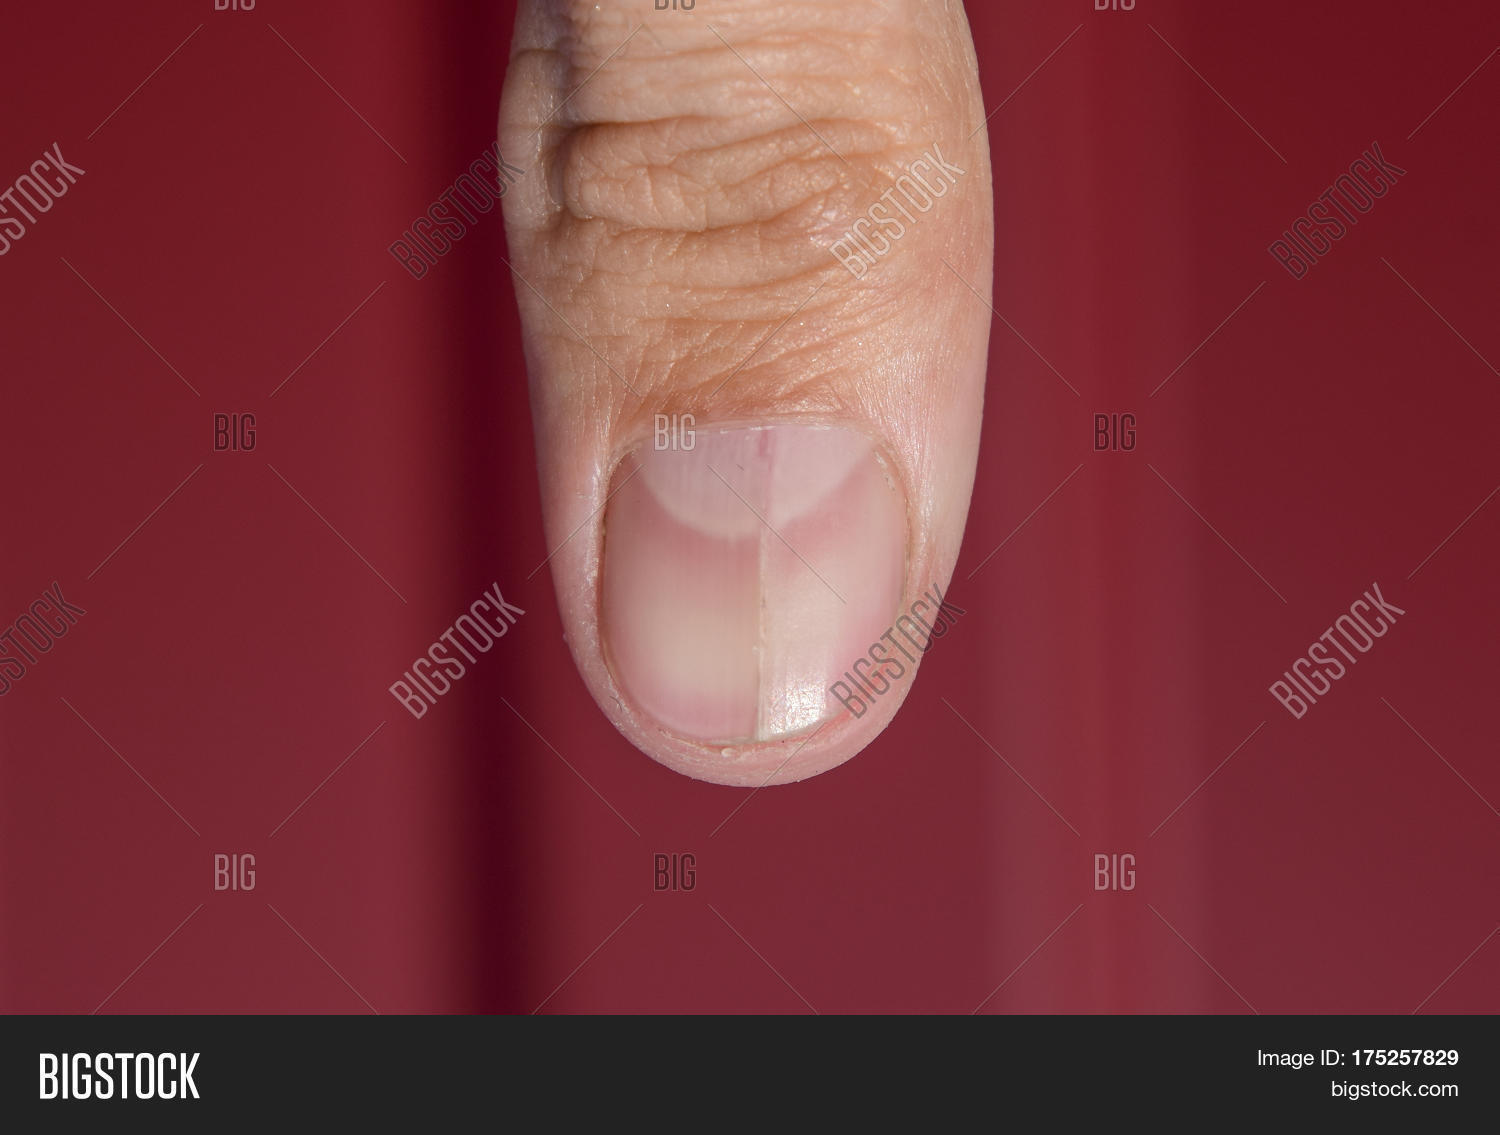 Forked Nail On Thumb. Image & Photo (Free Trial) | Bigstock